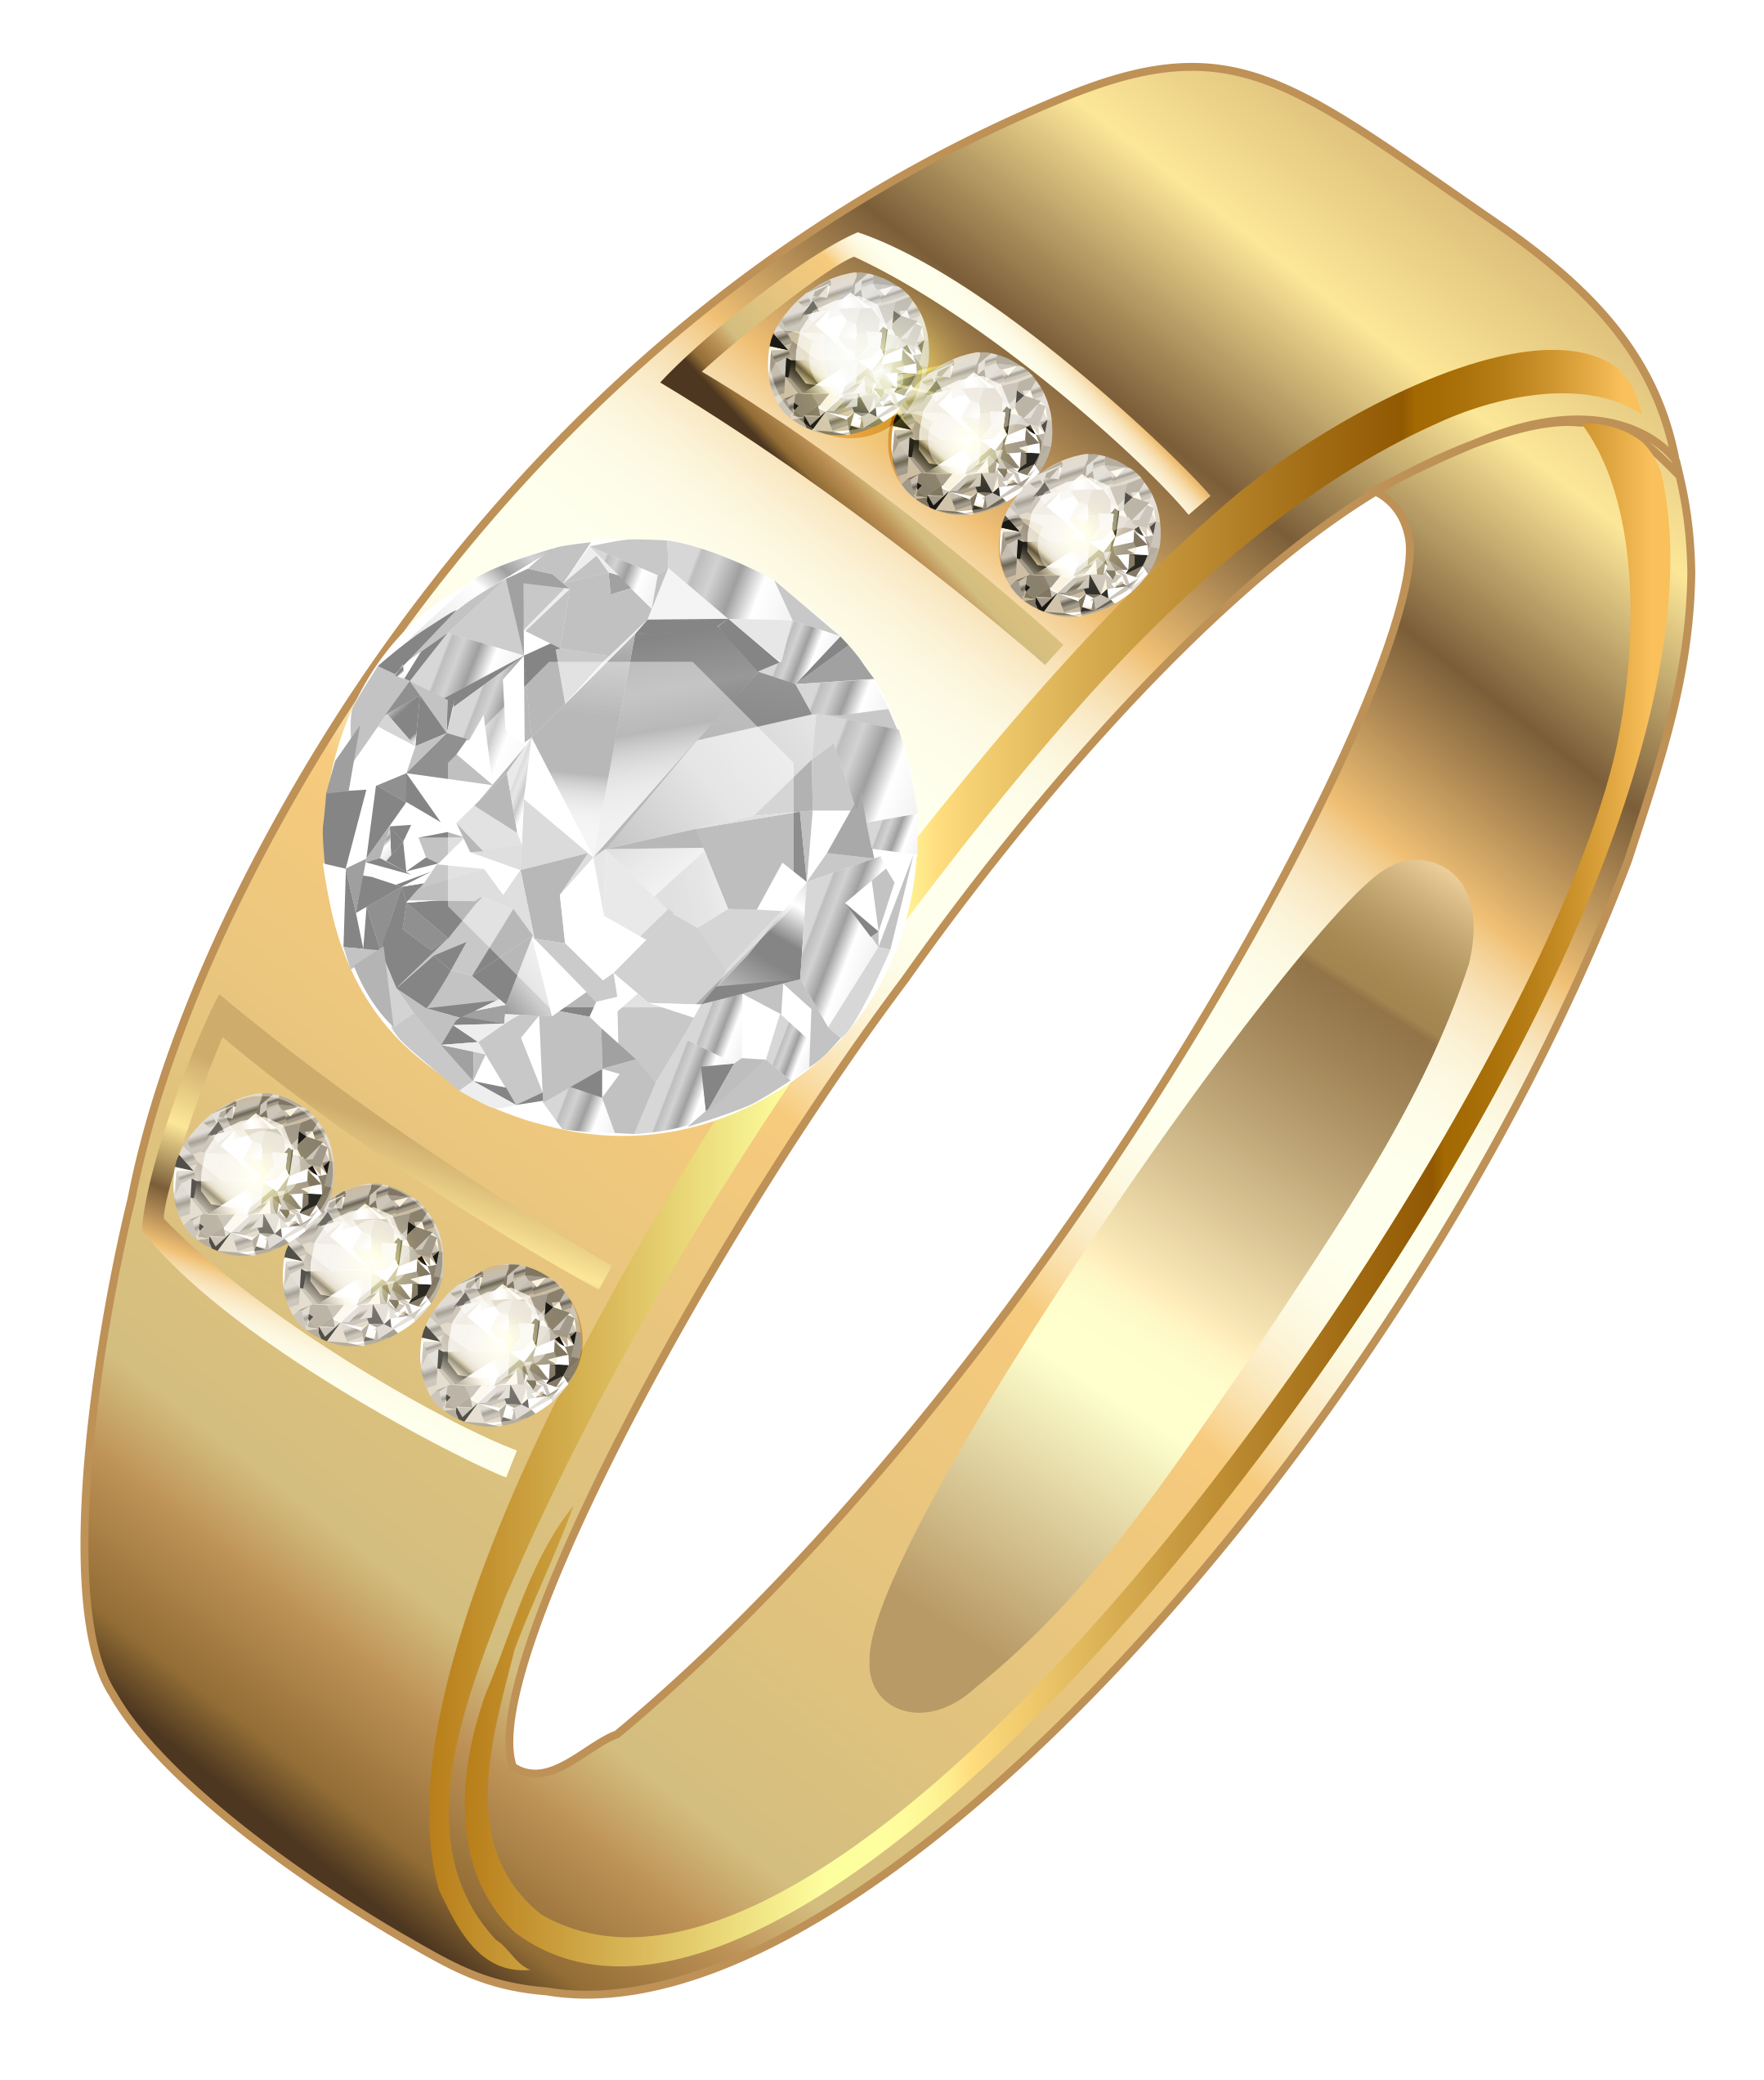 Engagement rings pune download free clip art with a.